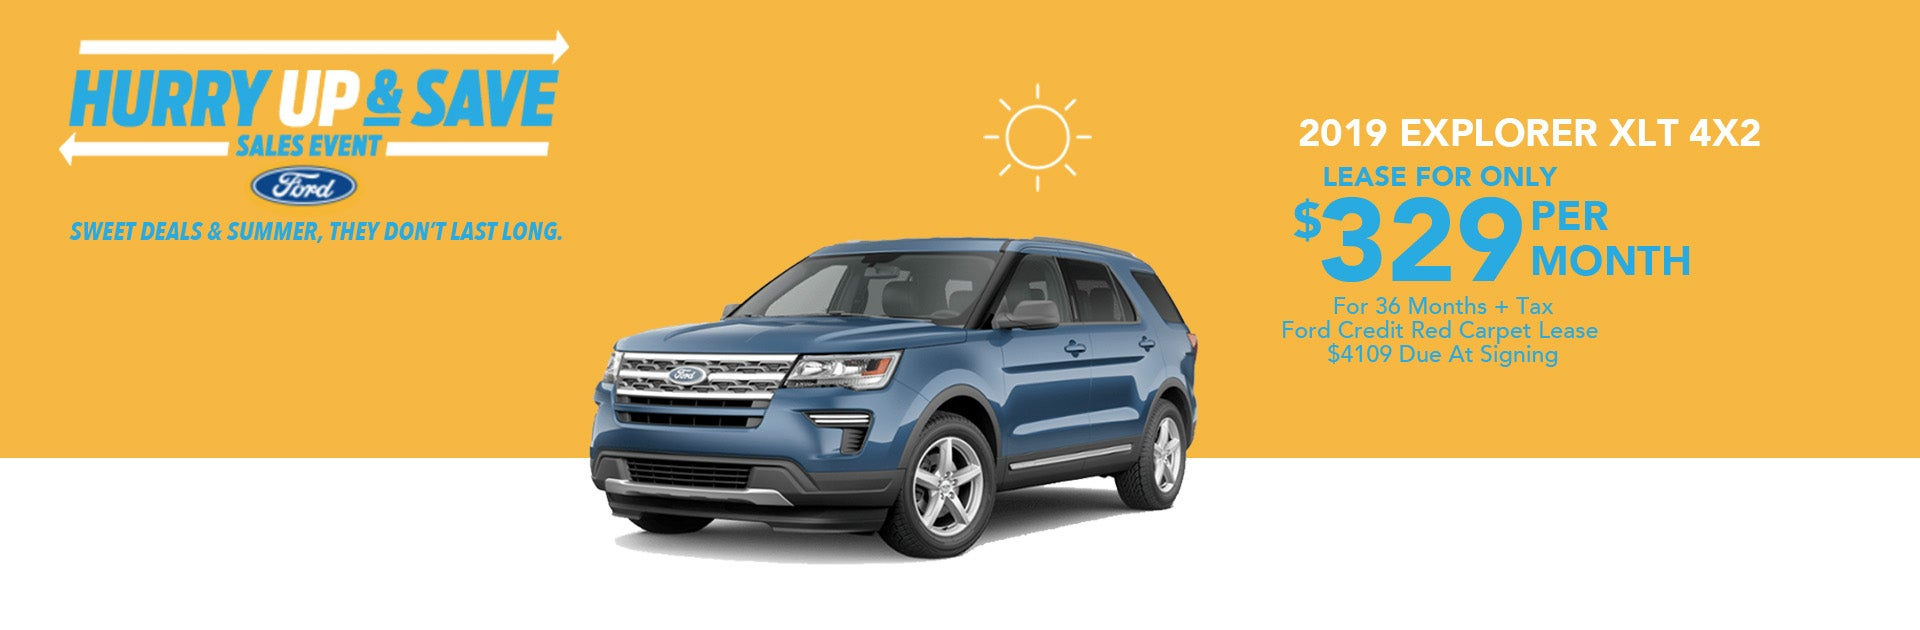 Car Dealer | Ford Dealership in Houston, TX | Russell & Smith Ford